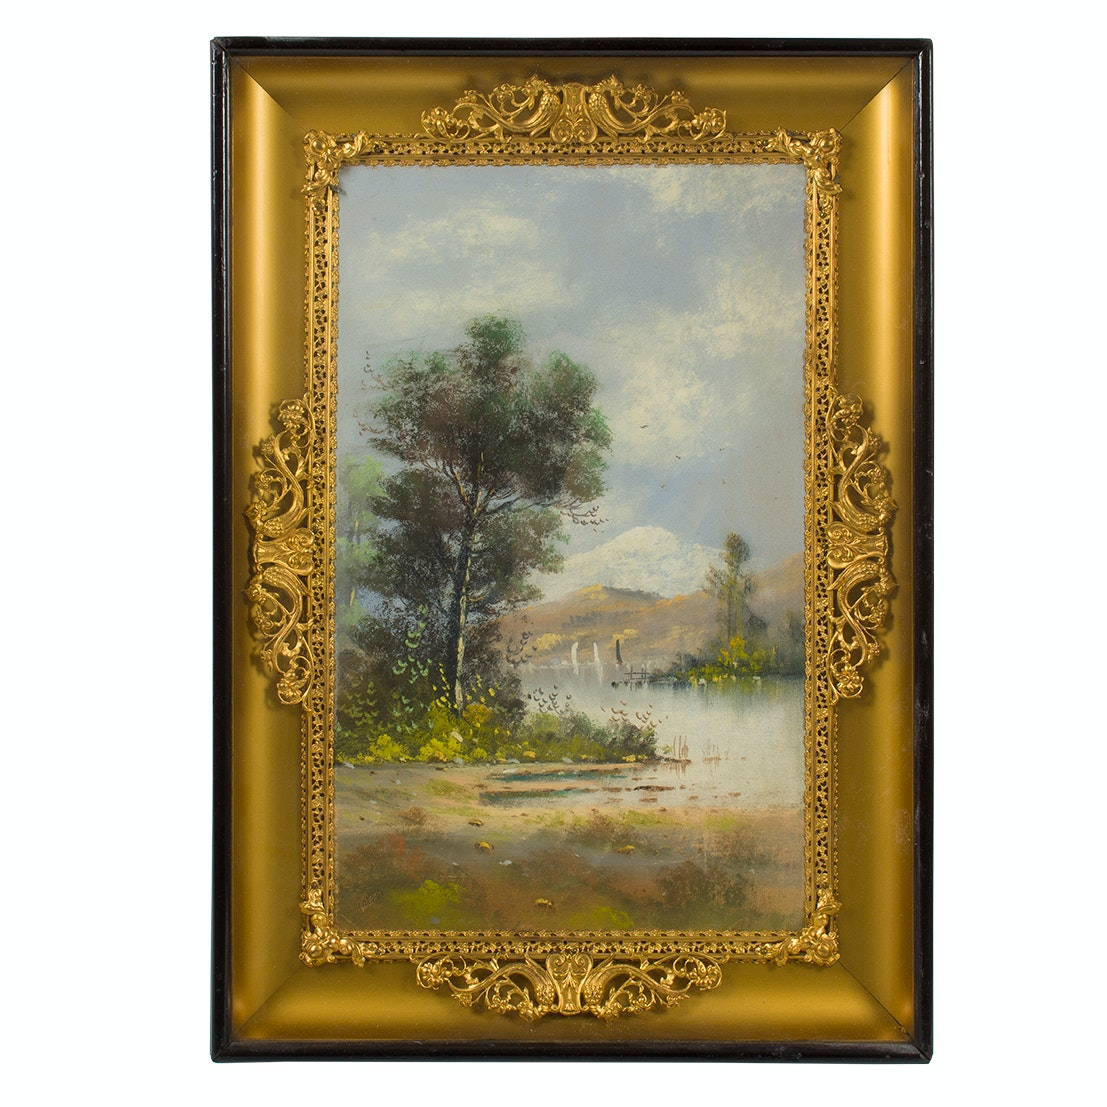 Pastel Landscape Drawing in Shadow Box Frame